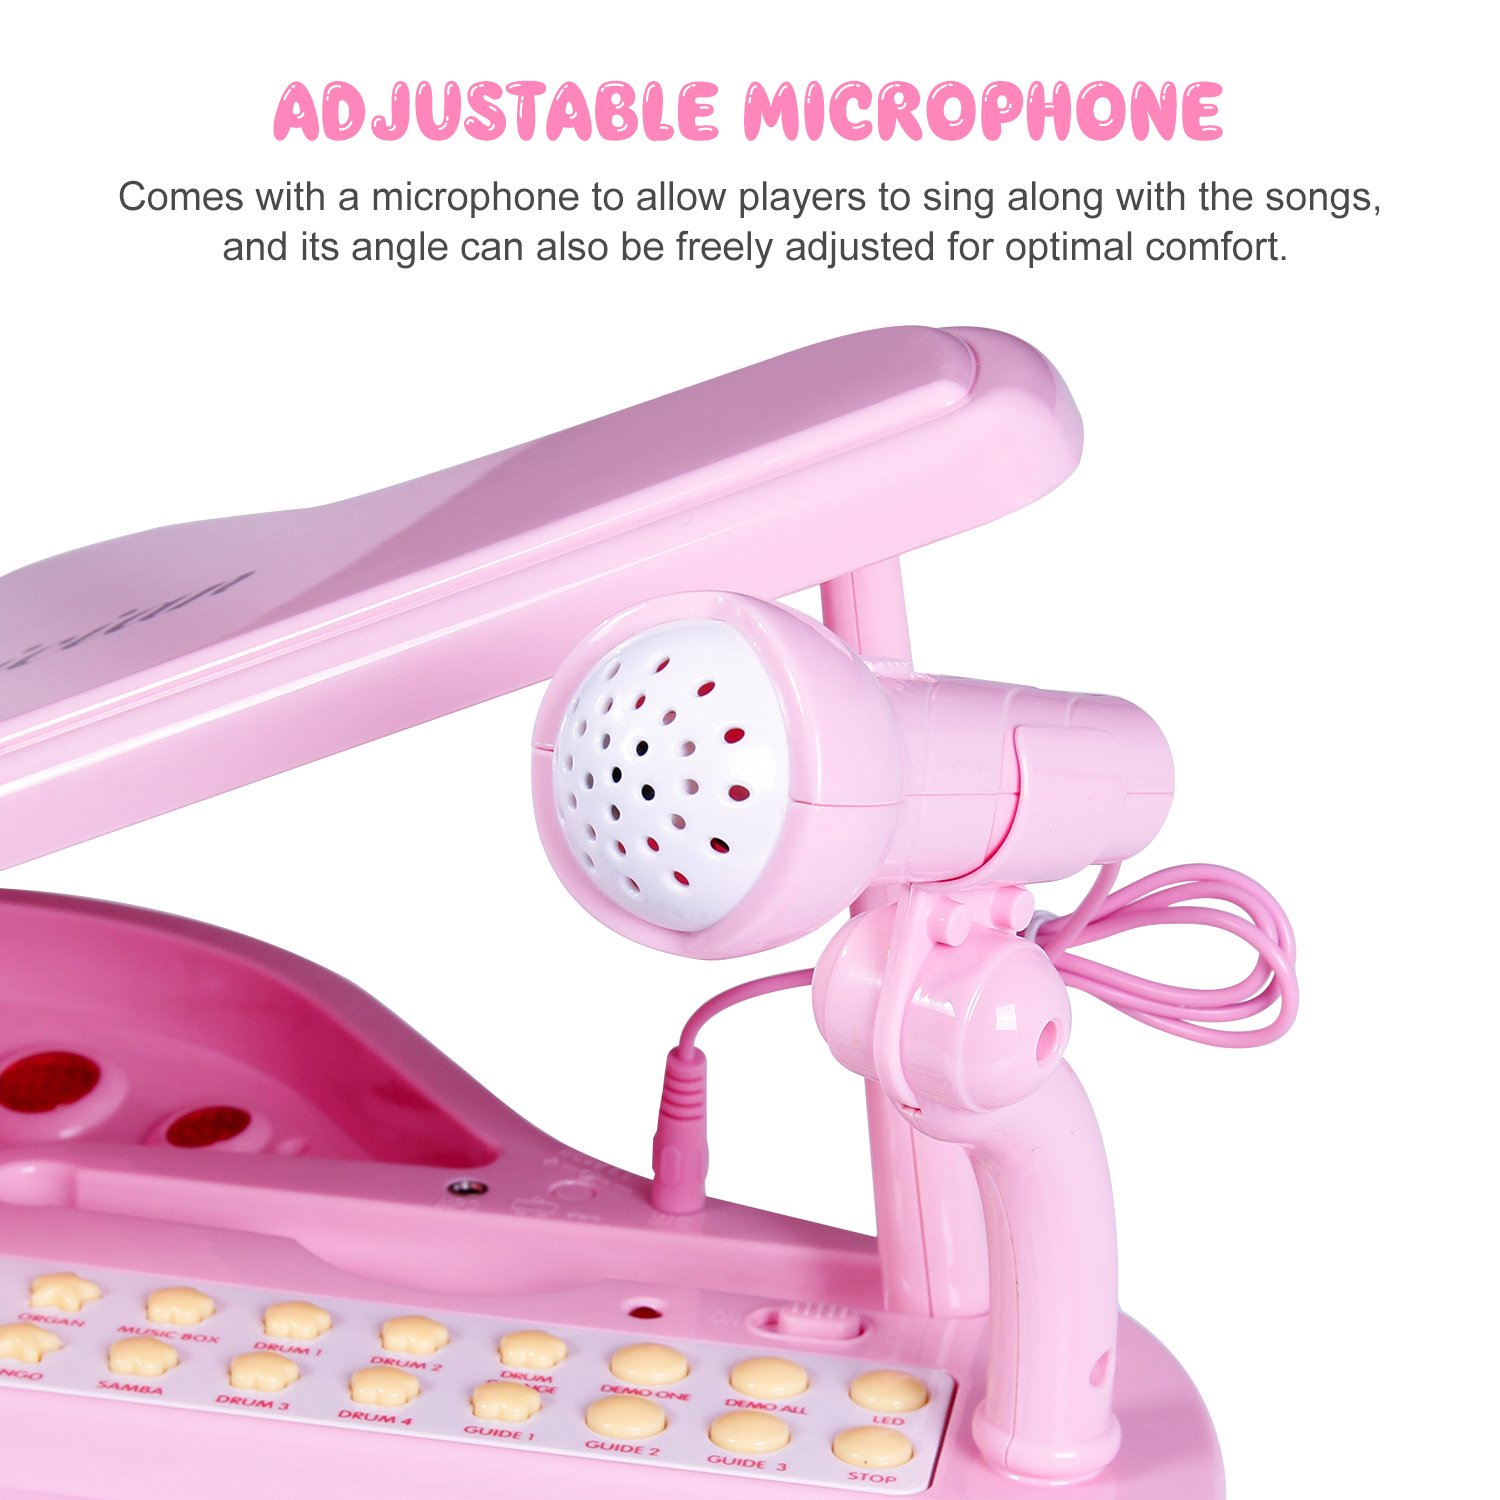 Audio Link with Mobile IPad PC Electronic Musical Multifunctional Instruments Pink iFixer 31 Keys Piano Keyboard Toy for Girl Toddlers Kids Musical Talent Development with Microphone